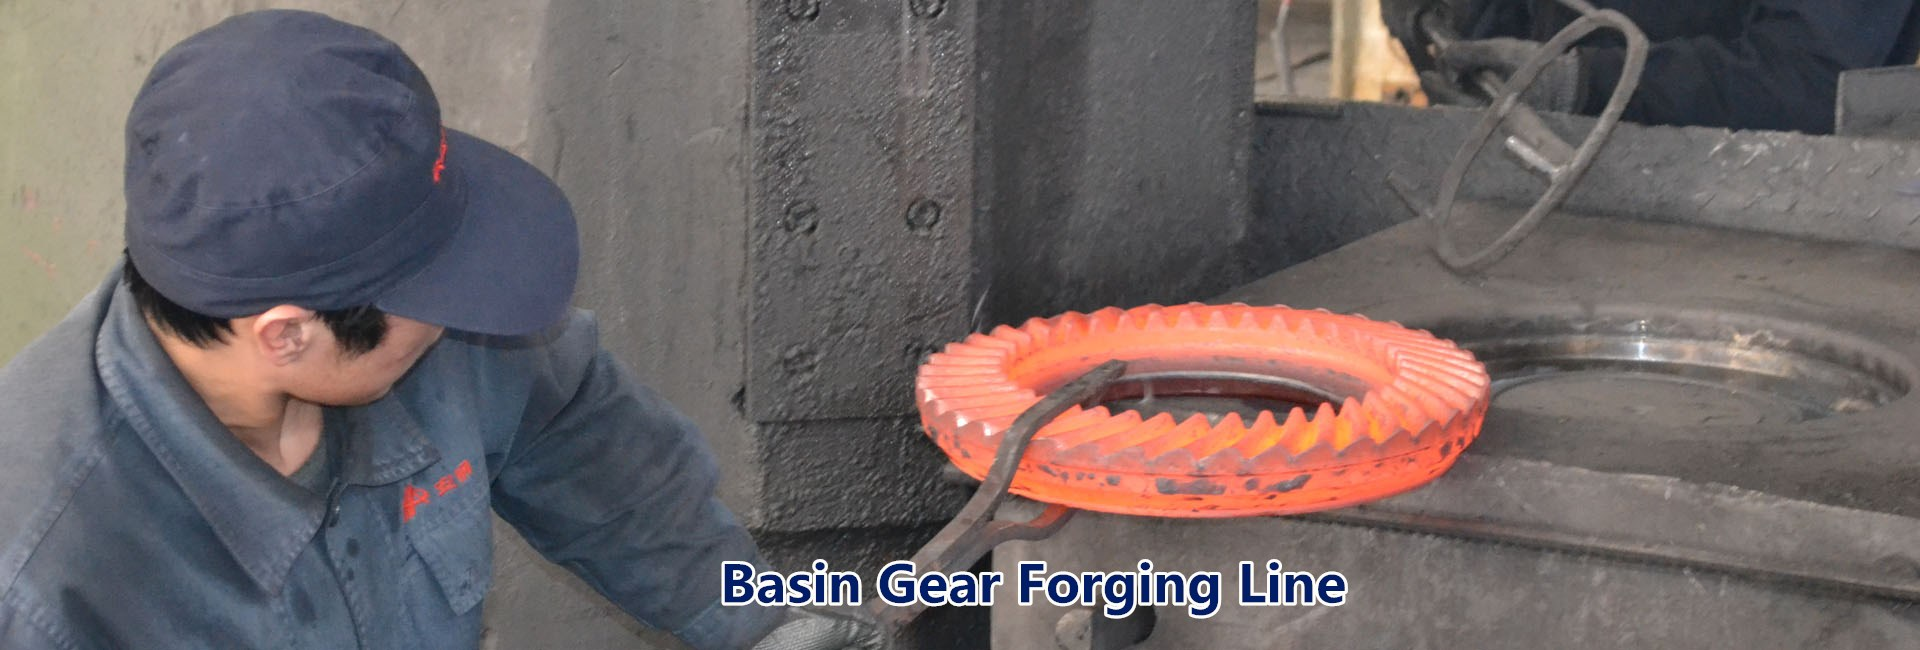 basin gear forging line